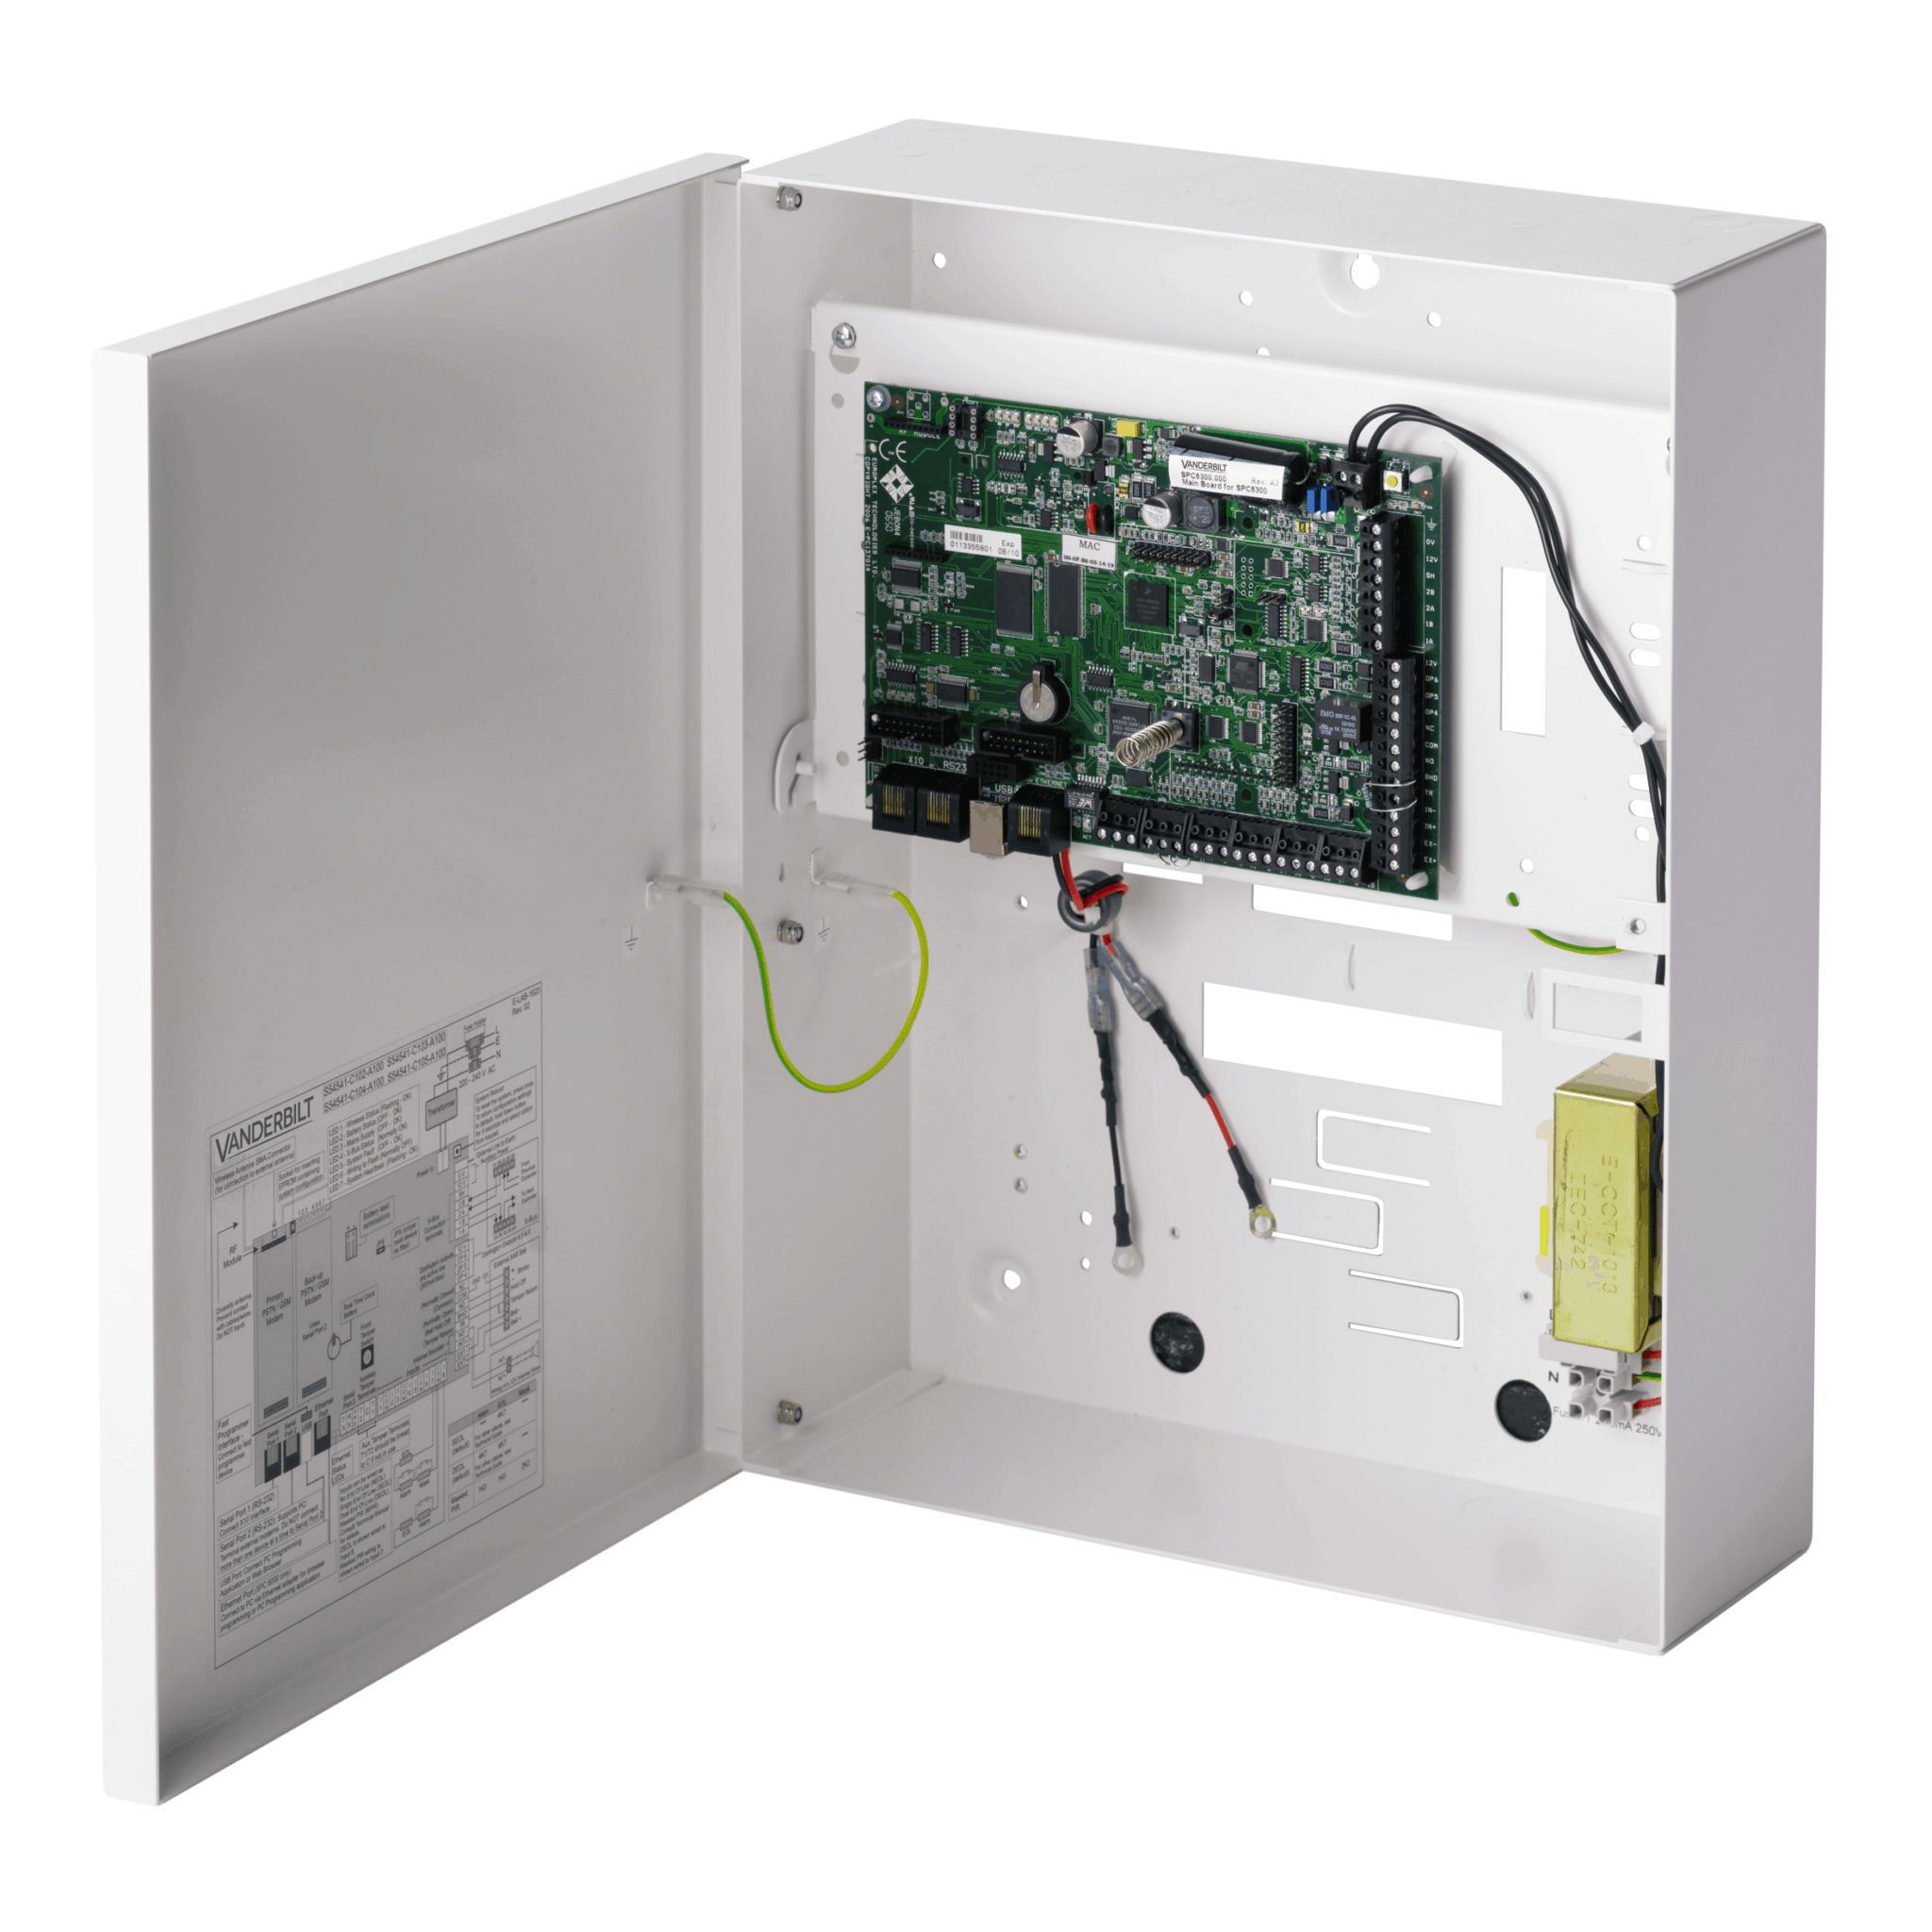 SPC6330 - 512 zone 2,500 user modular intrusion system